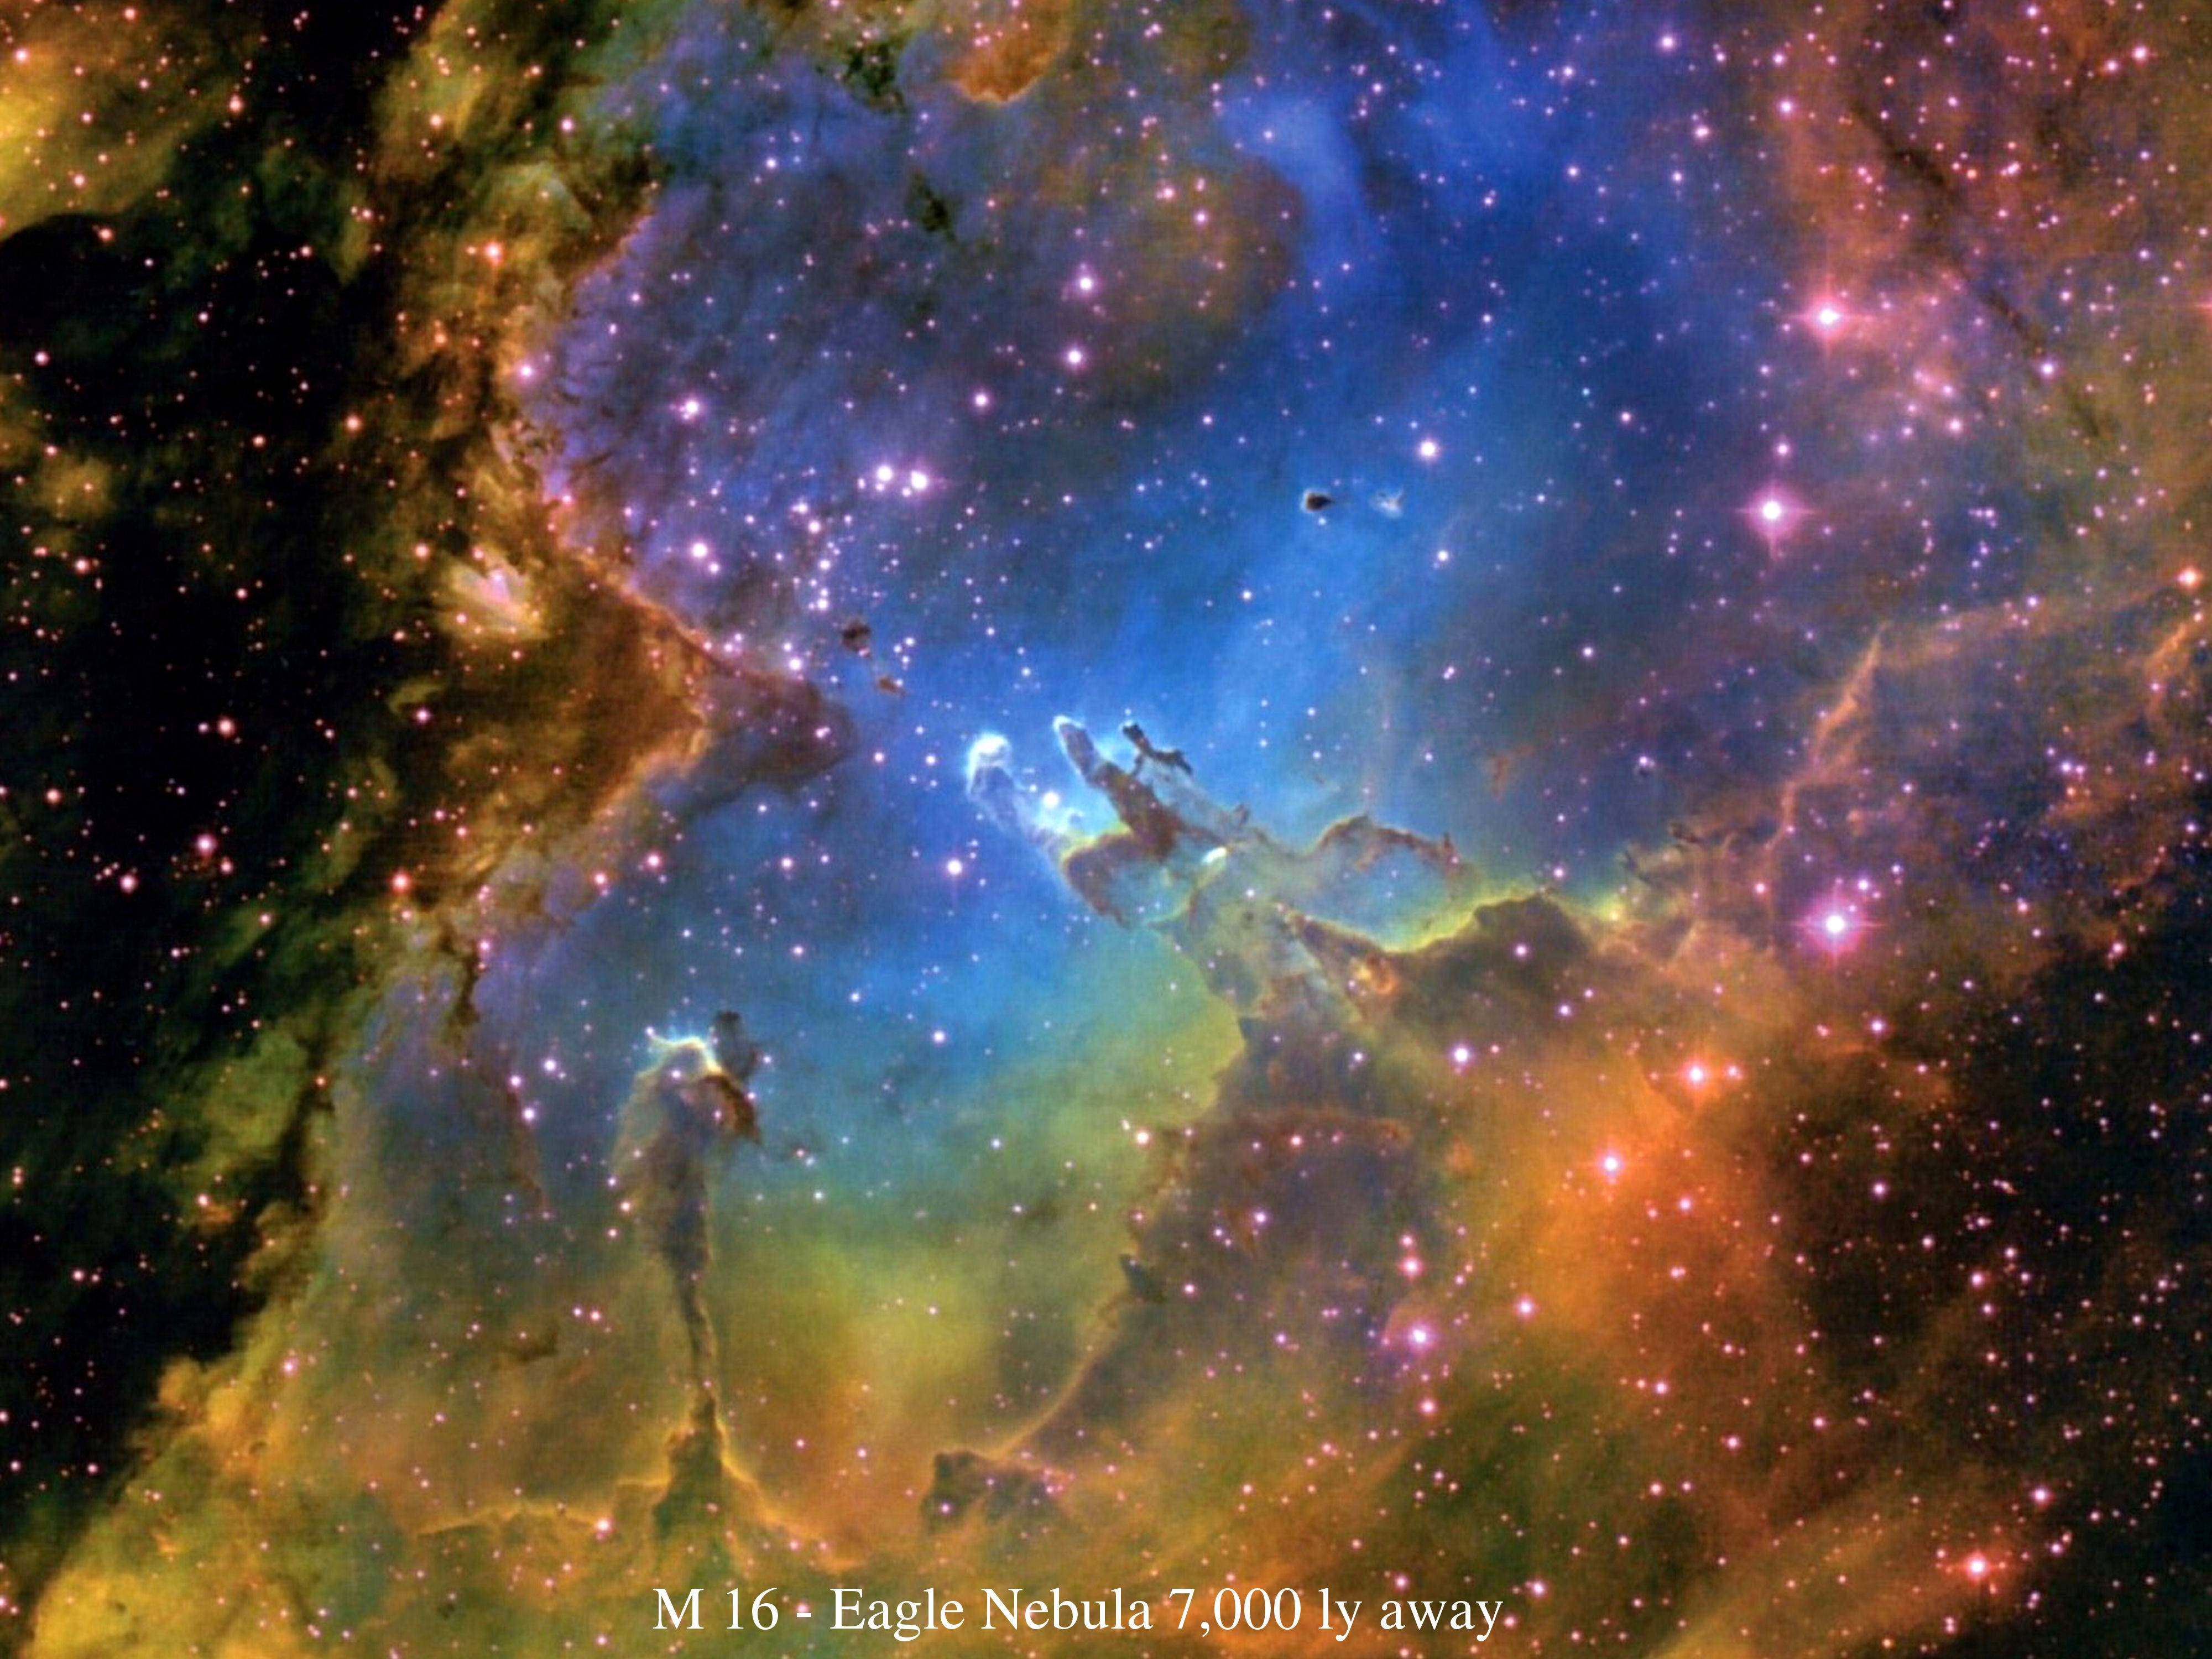 Eagle Nebula Wallpapers - Wallpaper Cave